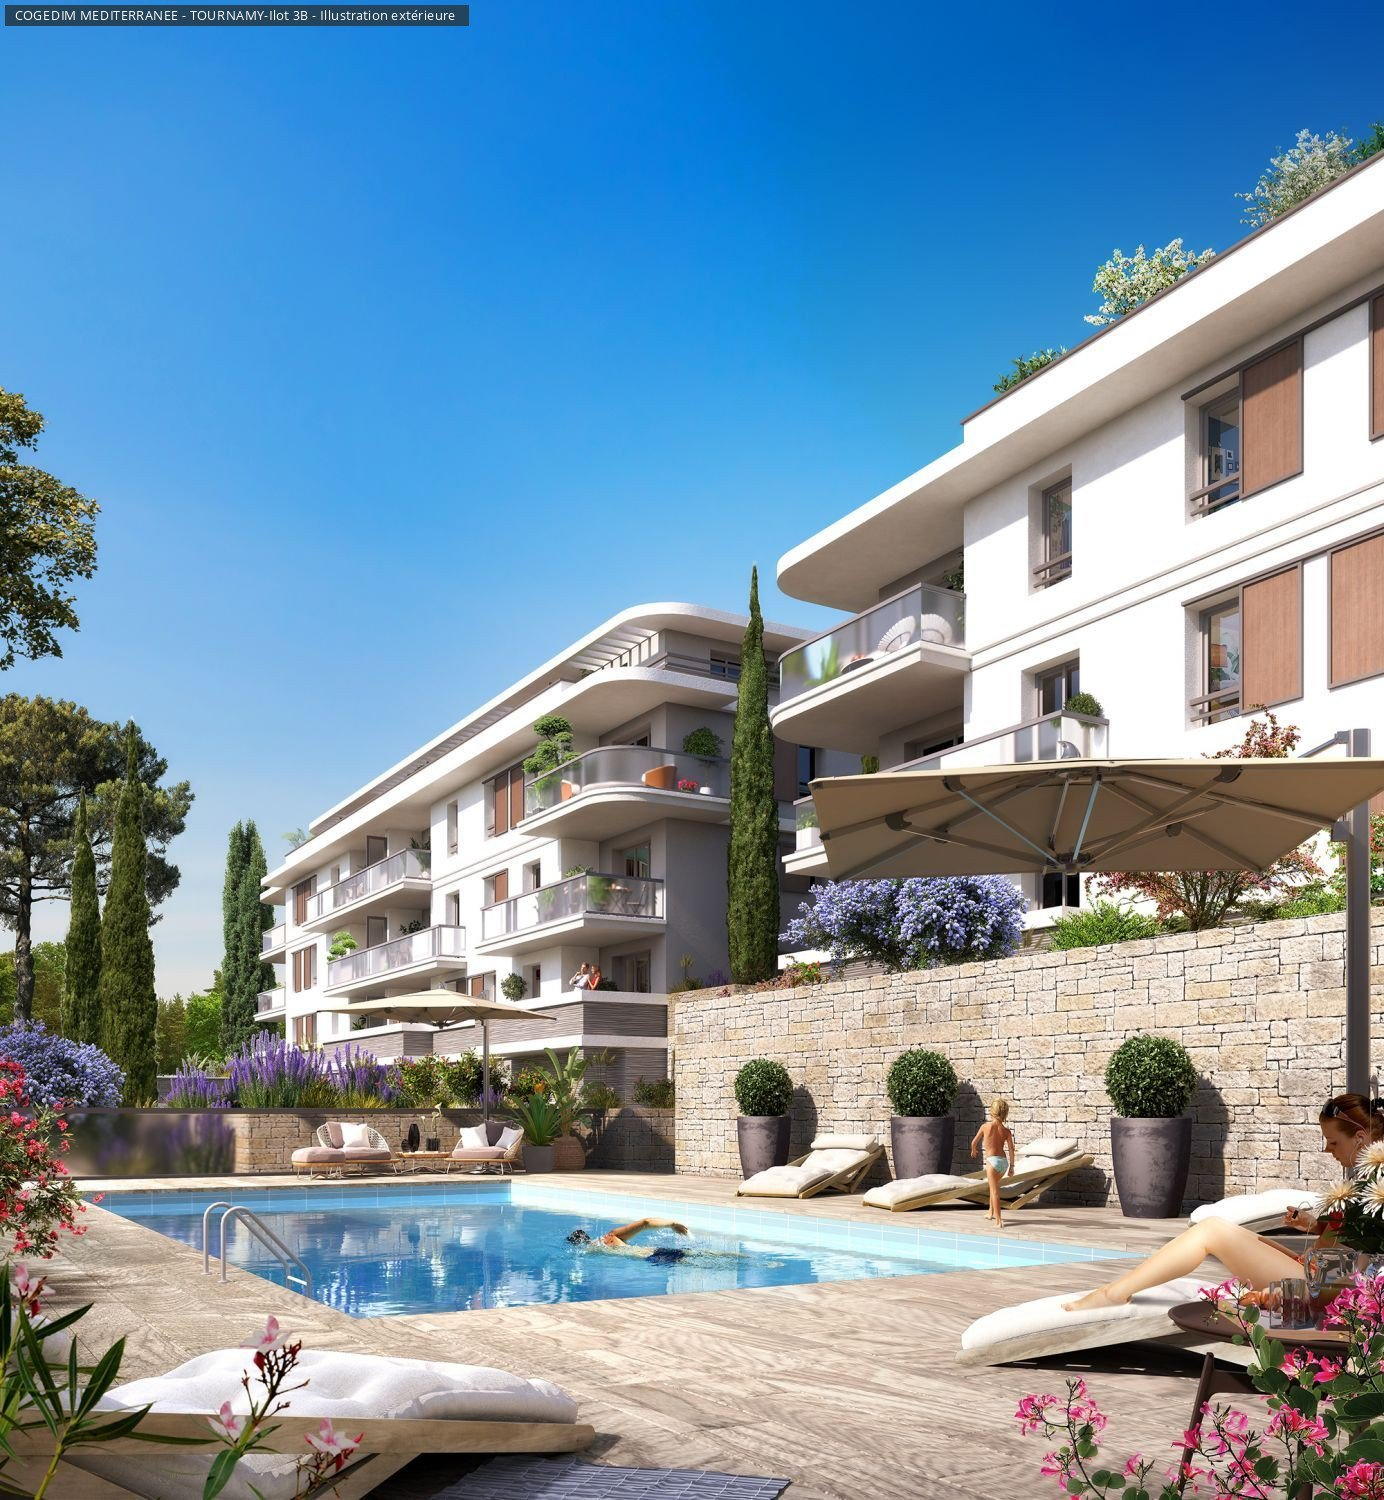 Residens i centrala Mougins 15 min from Cannes